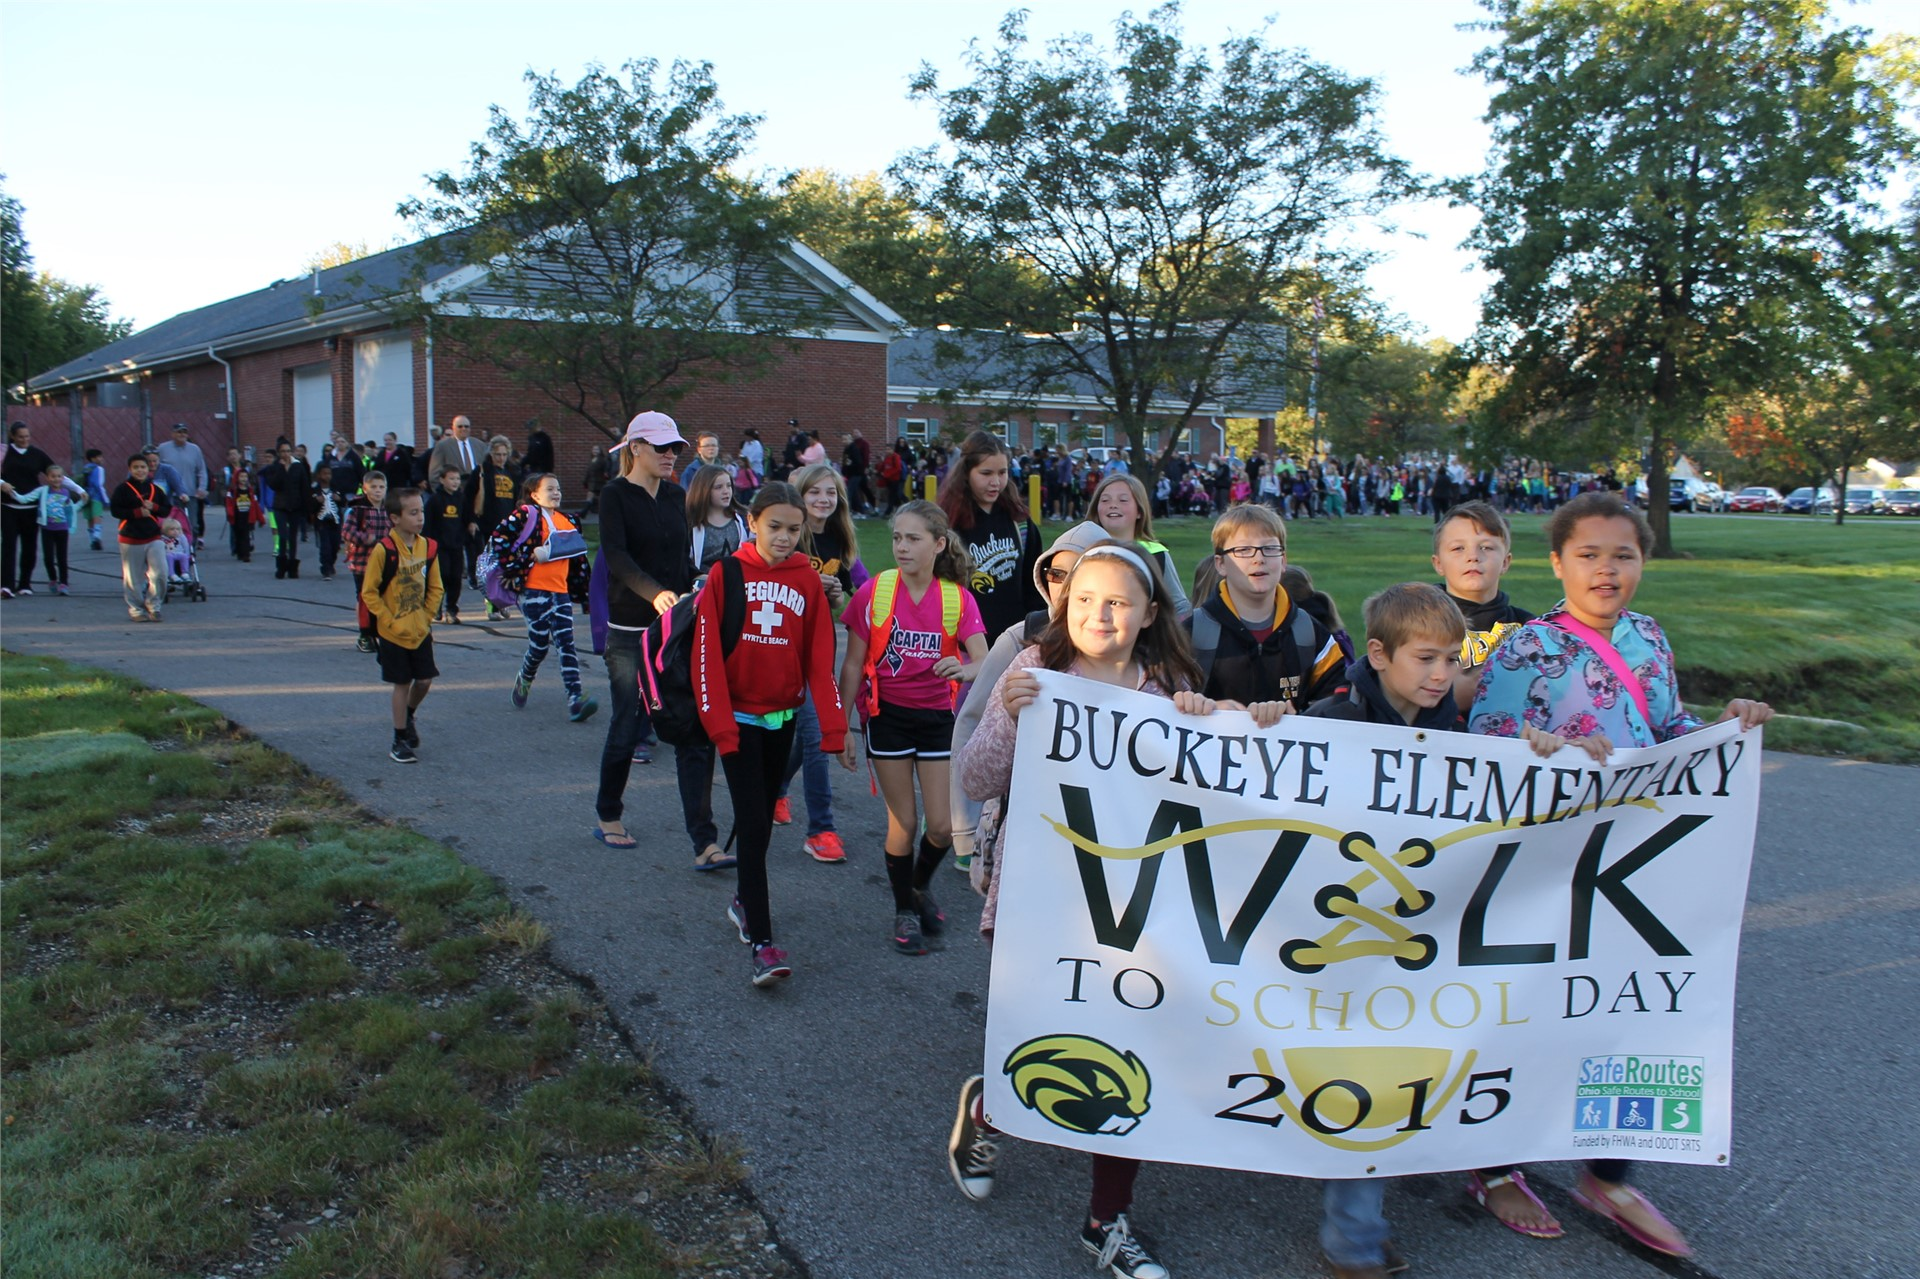 Walk to School Day - Thank you!